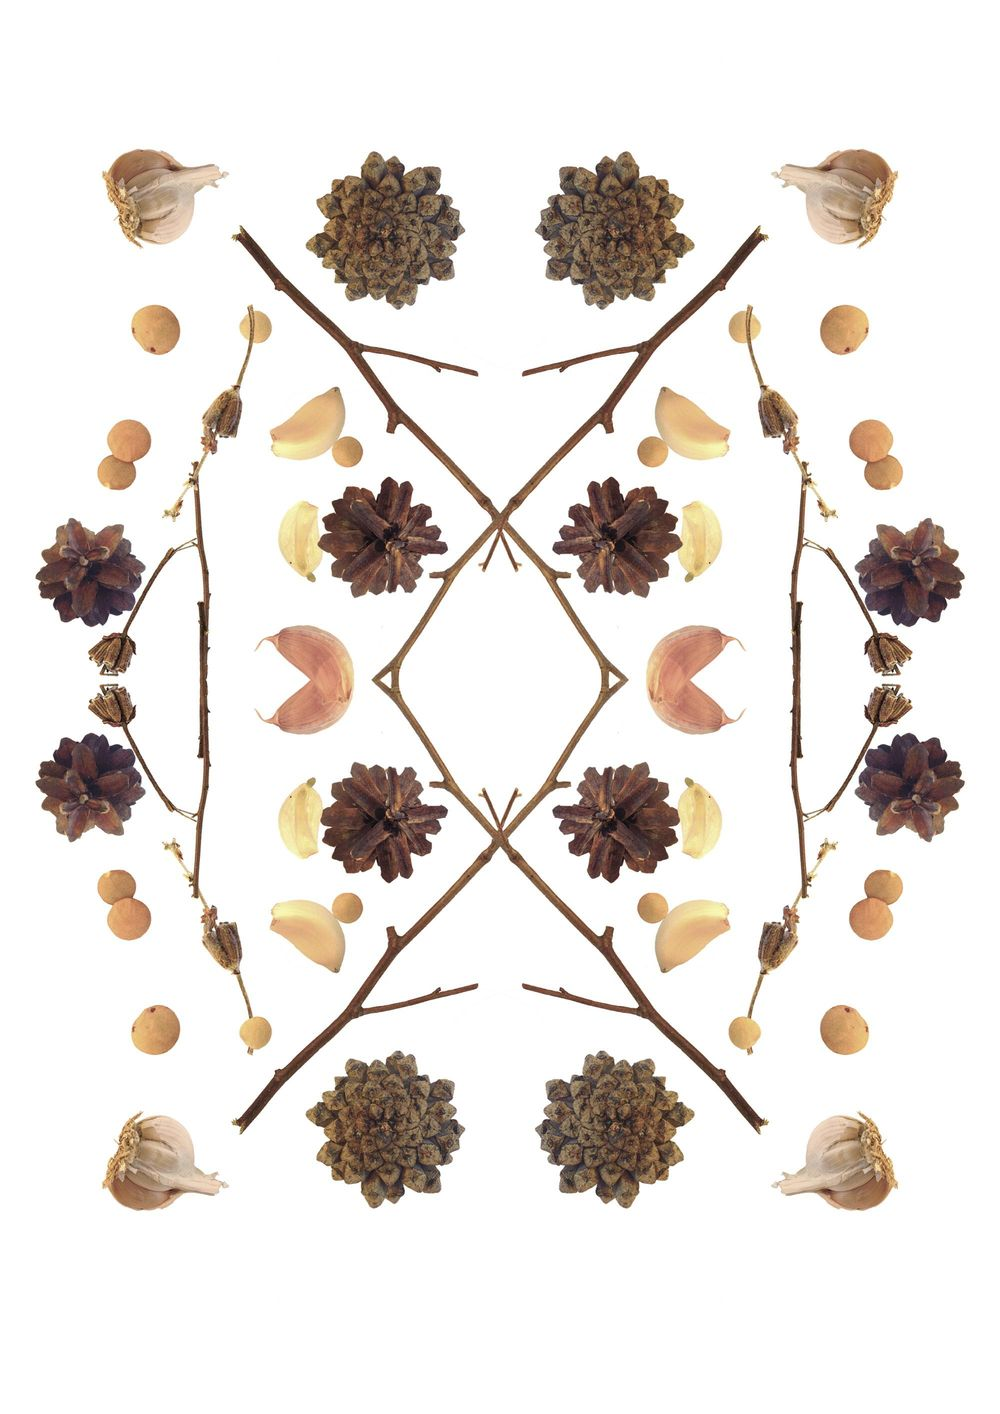 branches, garlic, cones and lentil - image 7 - student project